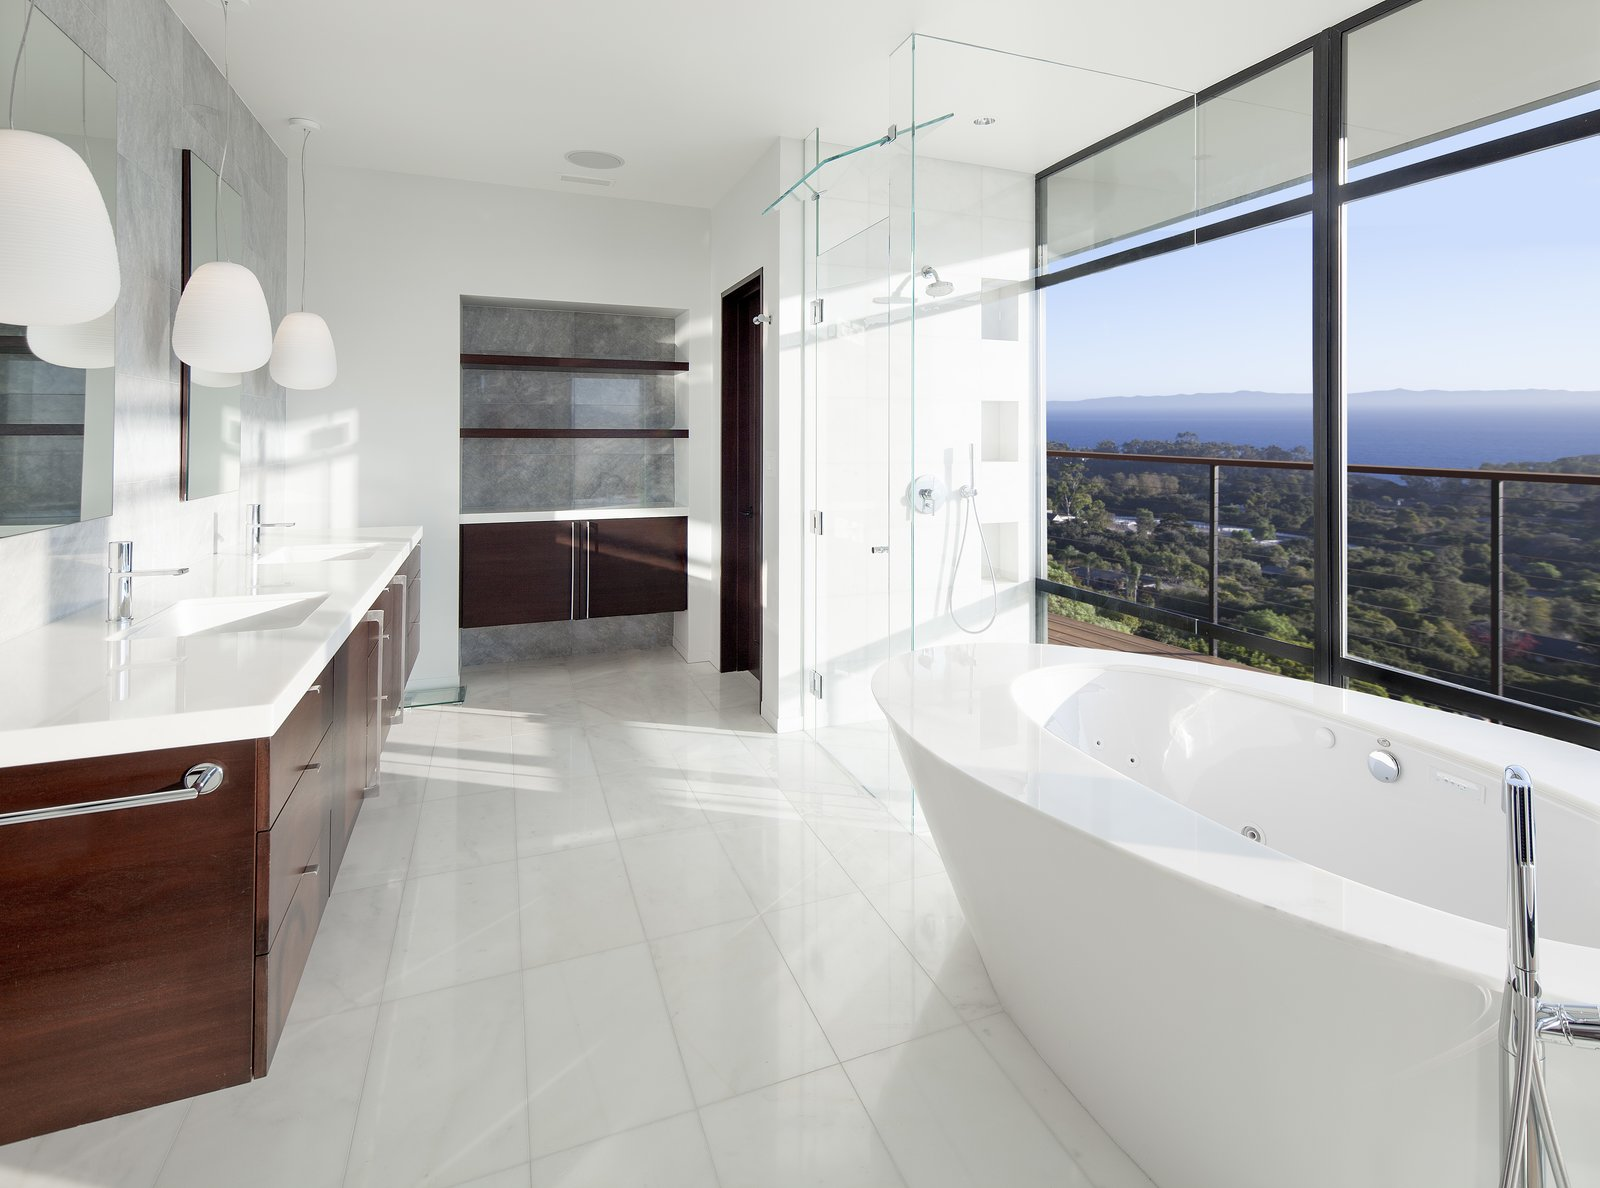 Bath, Marble, Pendant, One Piece, Marble, Recessed, Freestanding, Soaking, Whirlpool, Open, and Full Electrochromic glass windows  Best Bath Soaking Pendant Freestanding Photos from Hope Ranch Residence